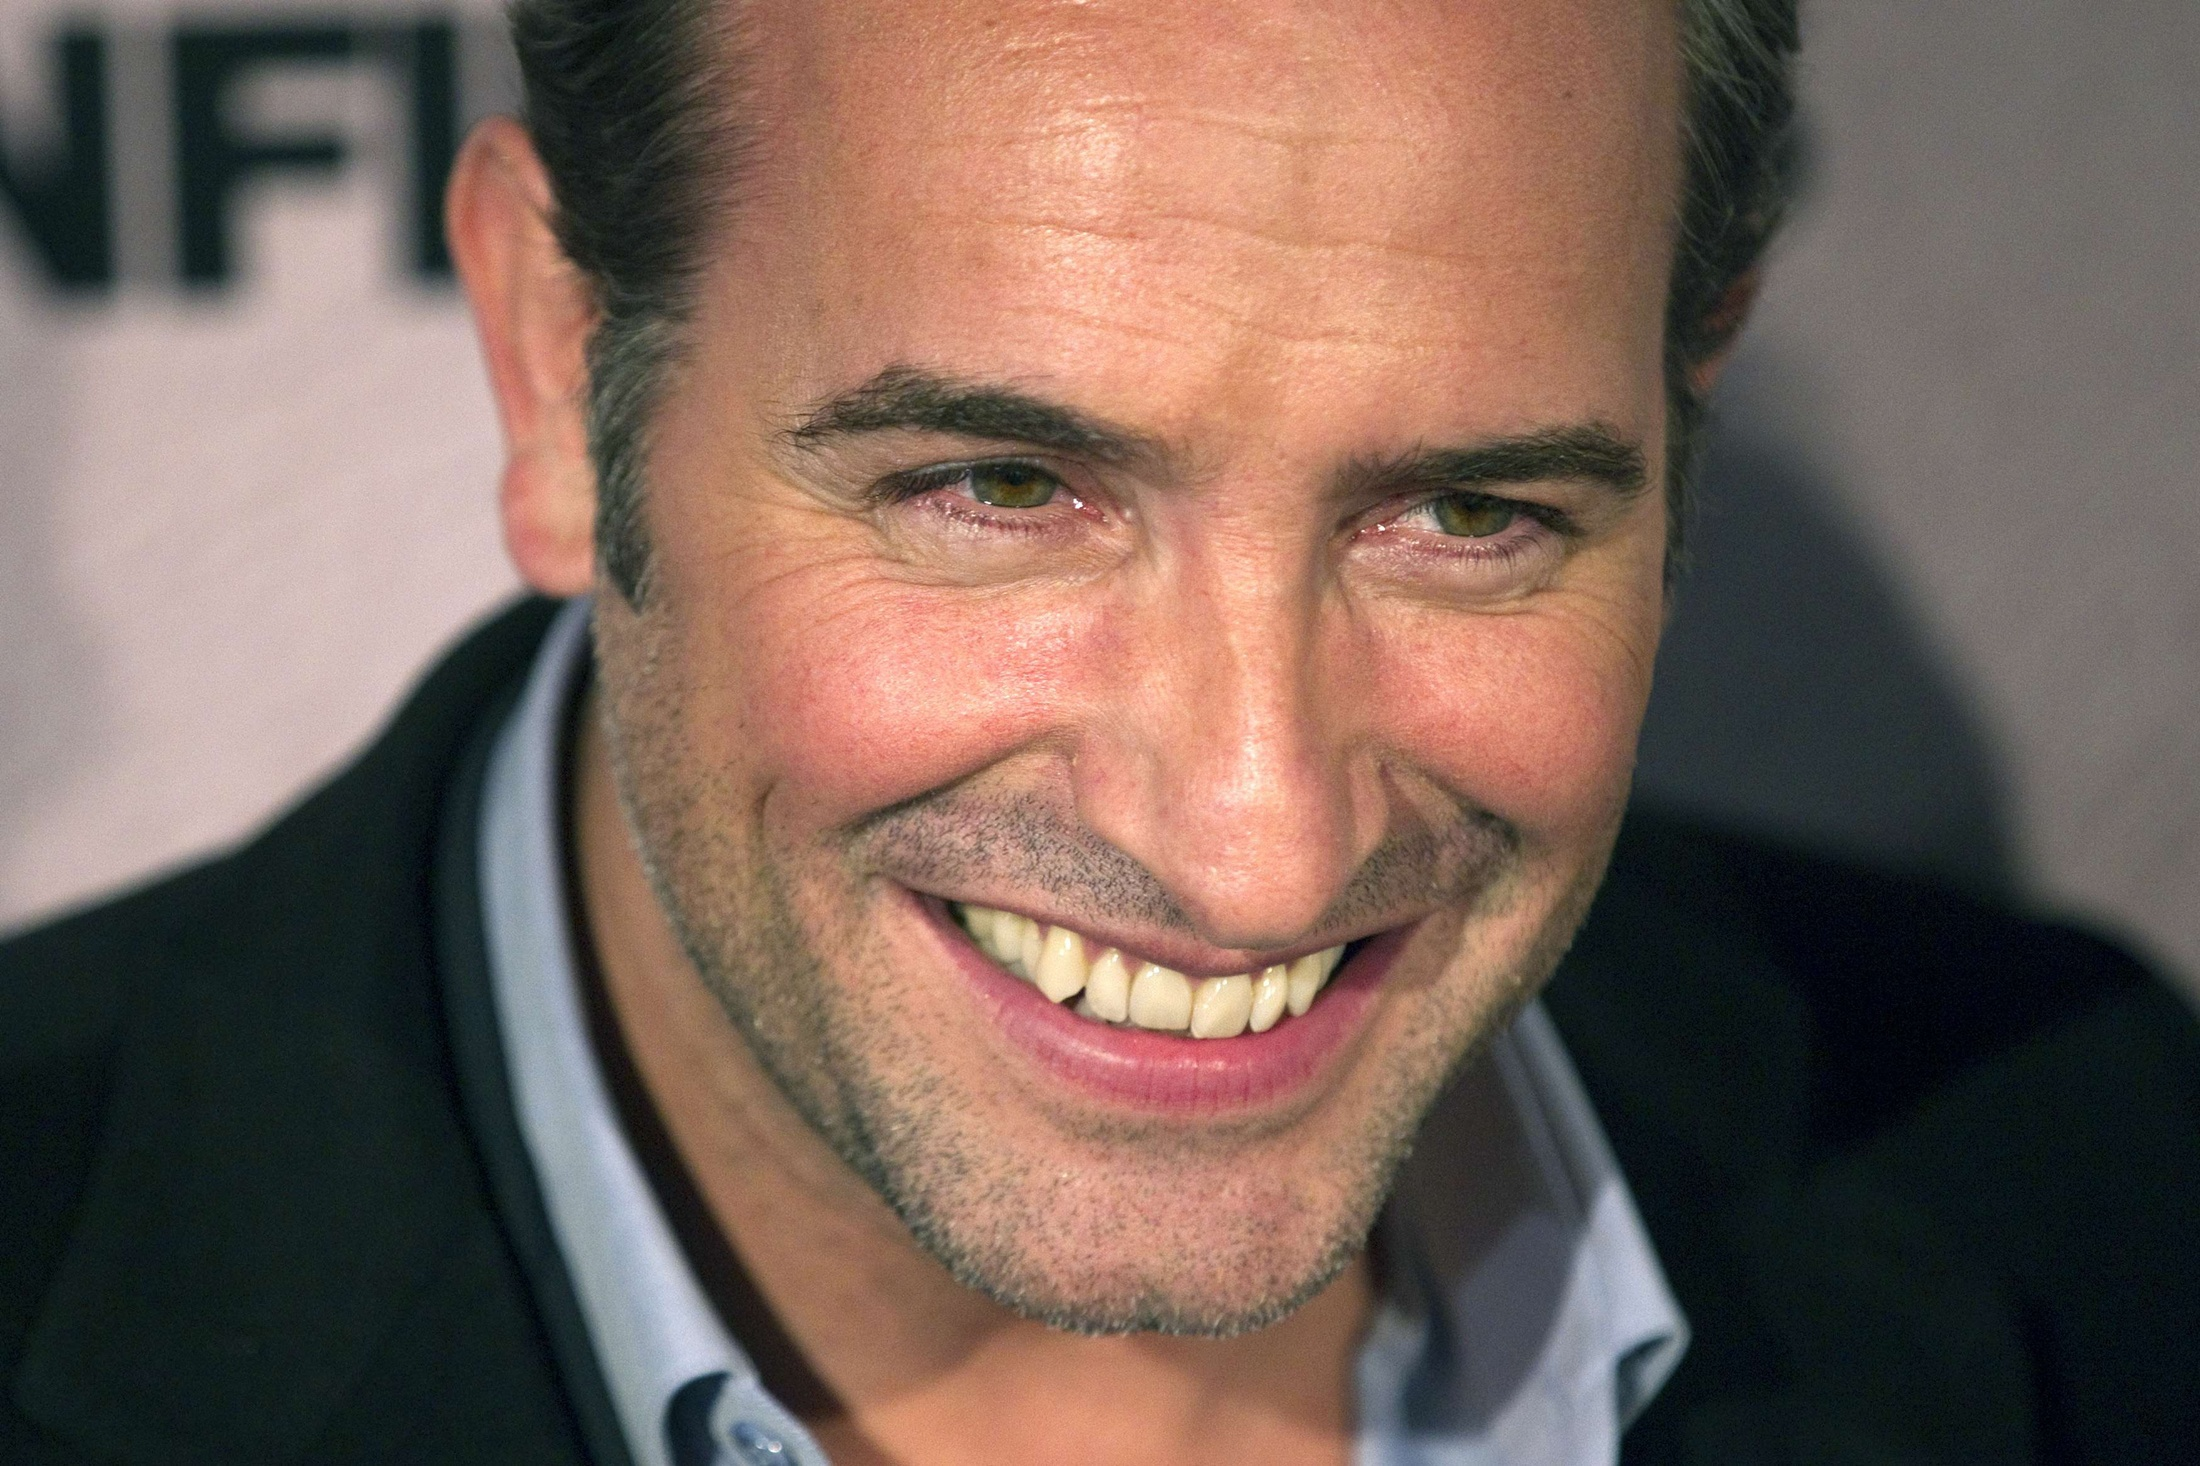 Jean dujardin wallpapers images photos pictures backgrounds for Jean dujardin photo